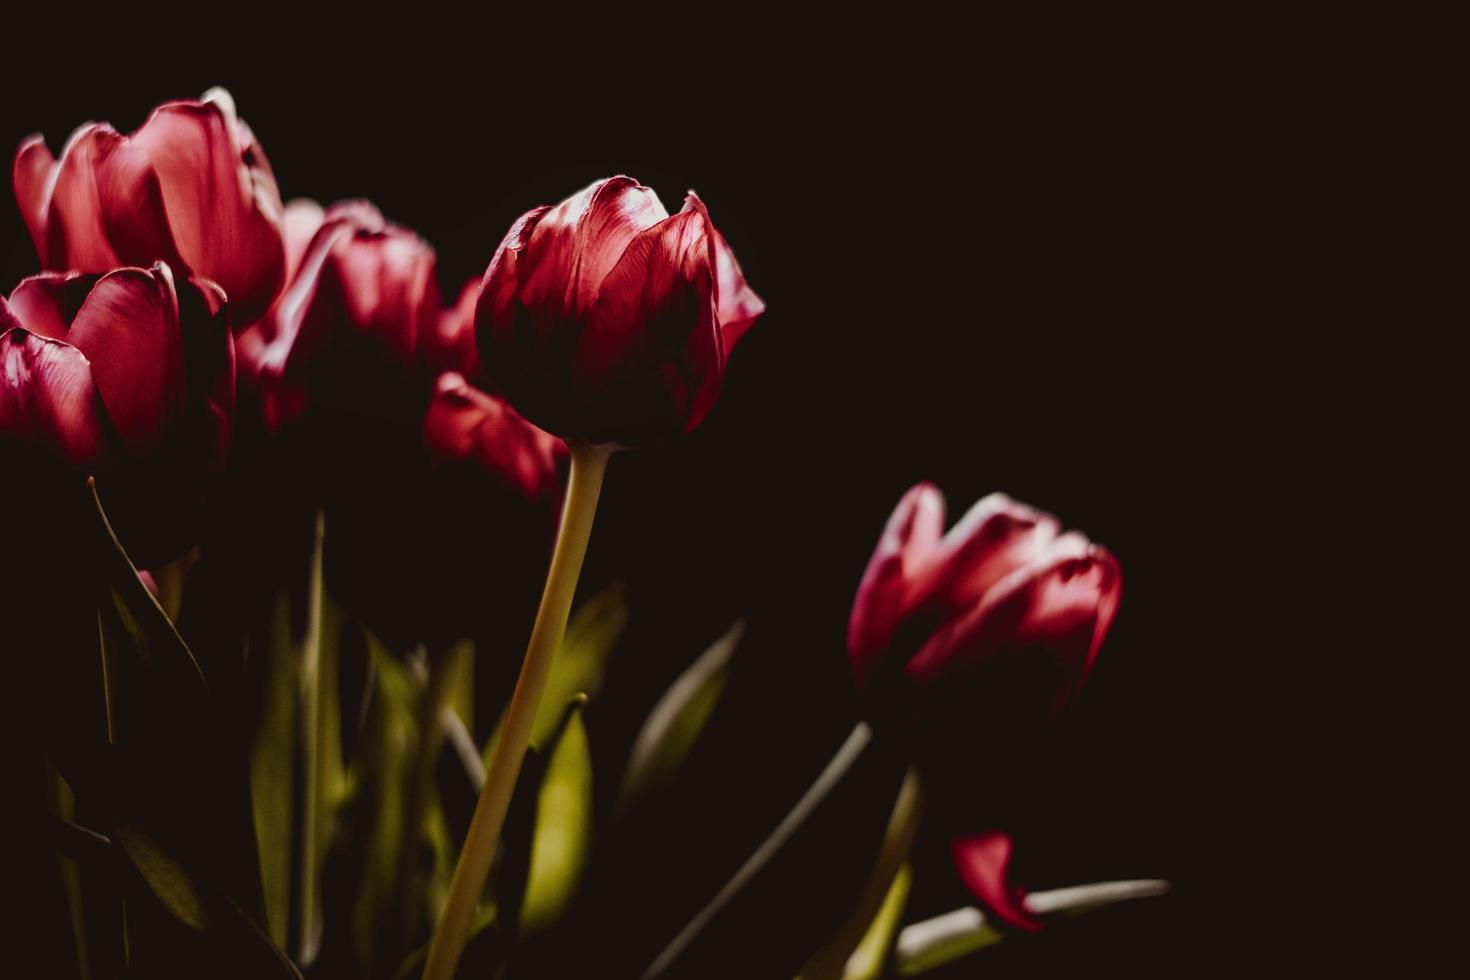 Red tulips on black background photo